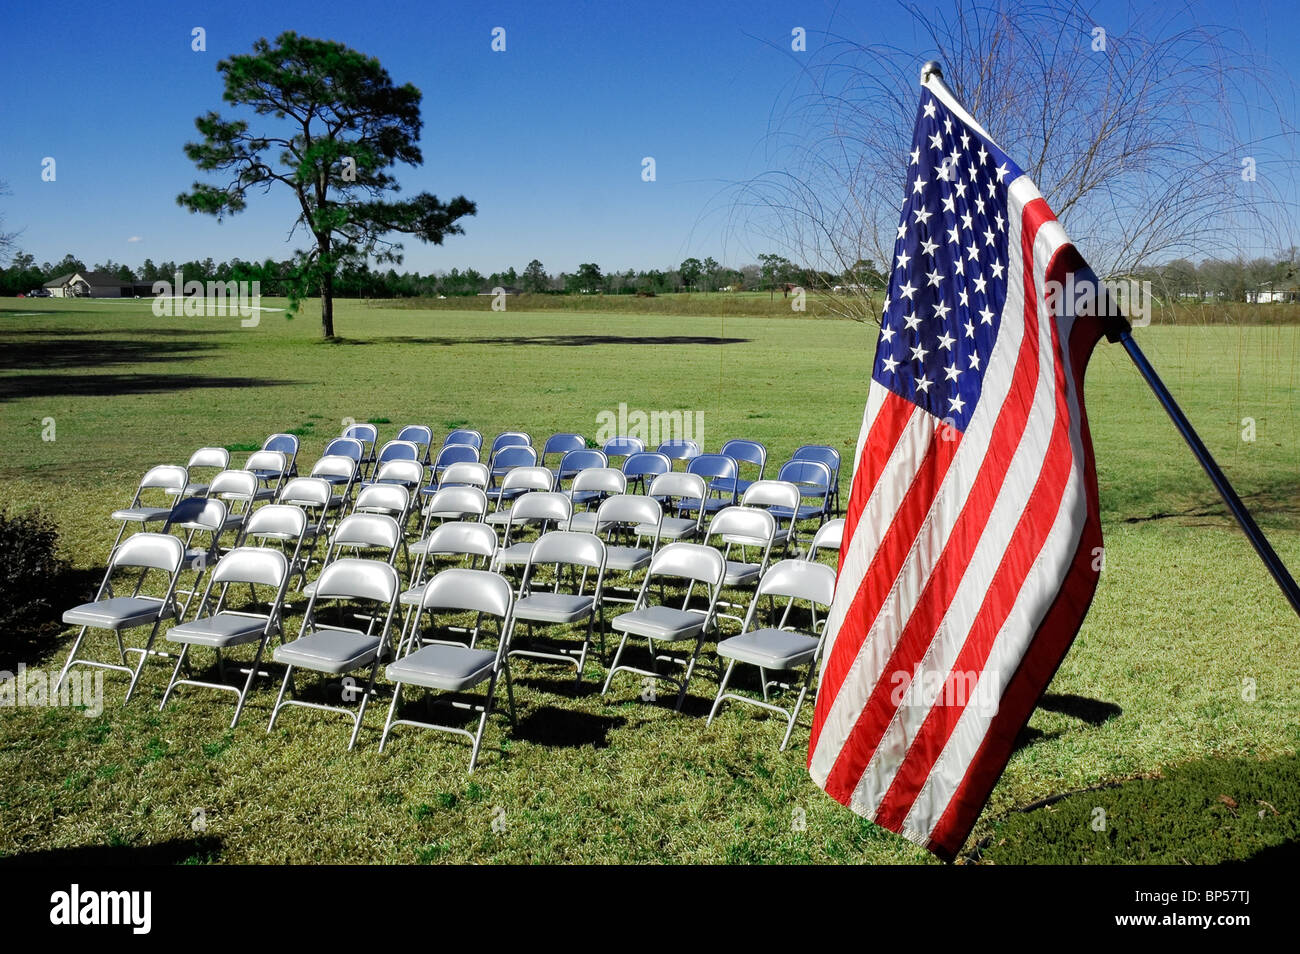 e77c17587e52 chairs and American flag set up outdoors - Stock Image